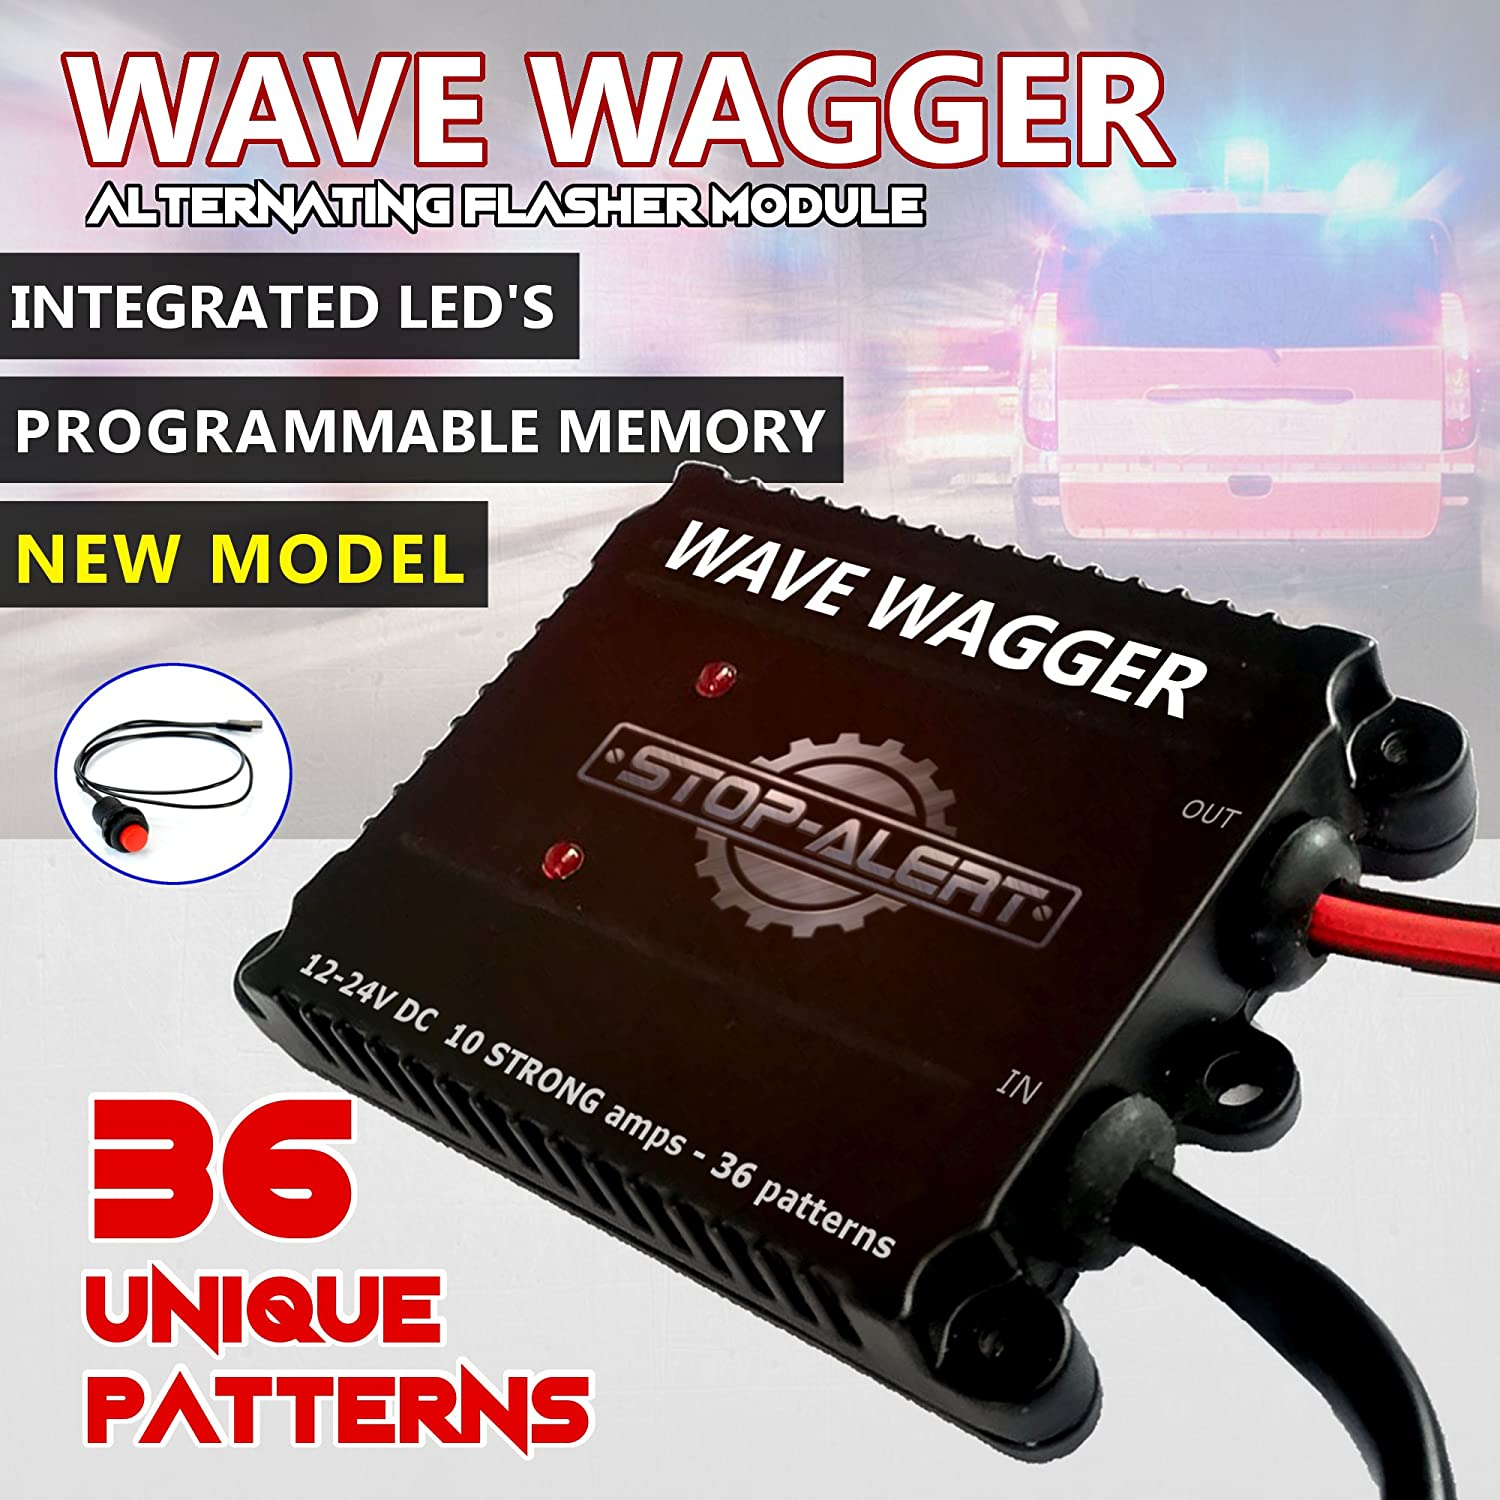 NEW 36 Pattern Wave Wagger HEADLIGHTS 10 AMPS Electronic Alternating Wig Wag Flasher HEAVY DUTY Relay for Emergency Trucks Police Cars & Ambulance - LED and Incandescent 12-24V